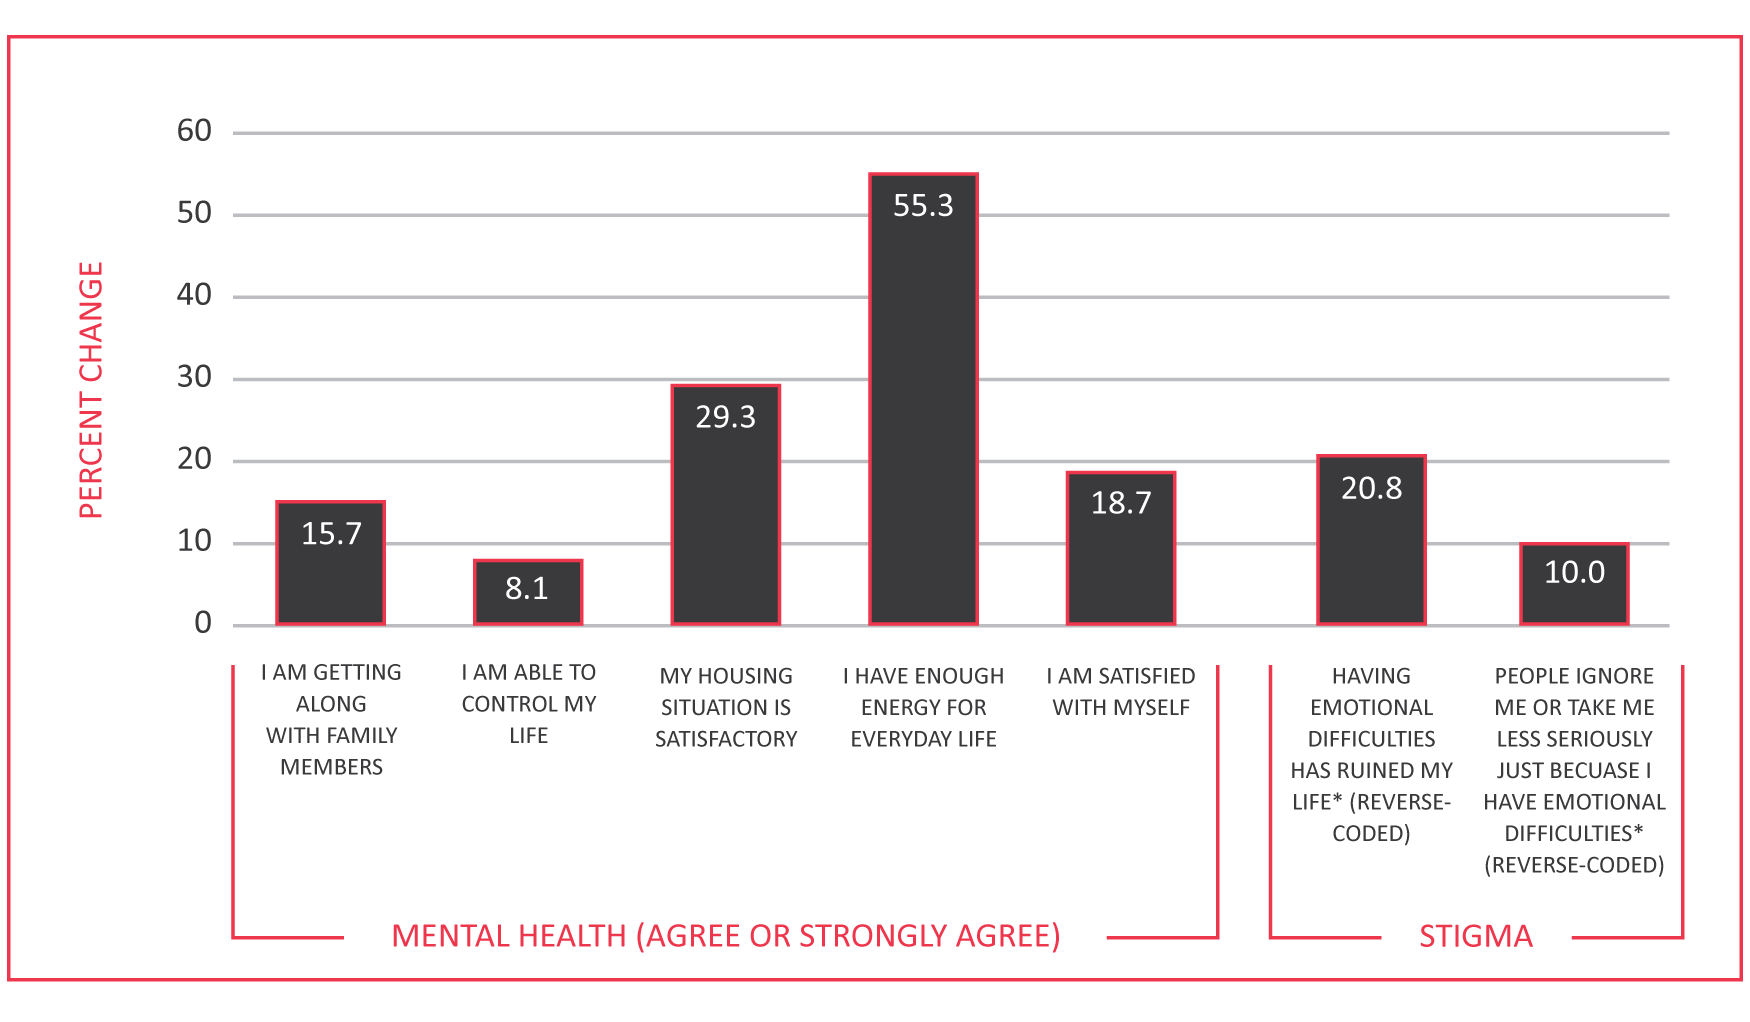 Figure 1. Mental Health and Stigma: Percent Change from Baseline to 6 Months